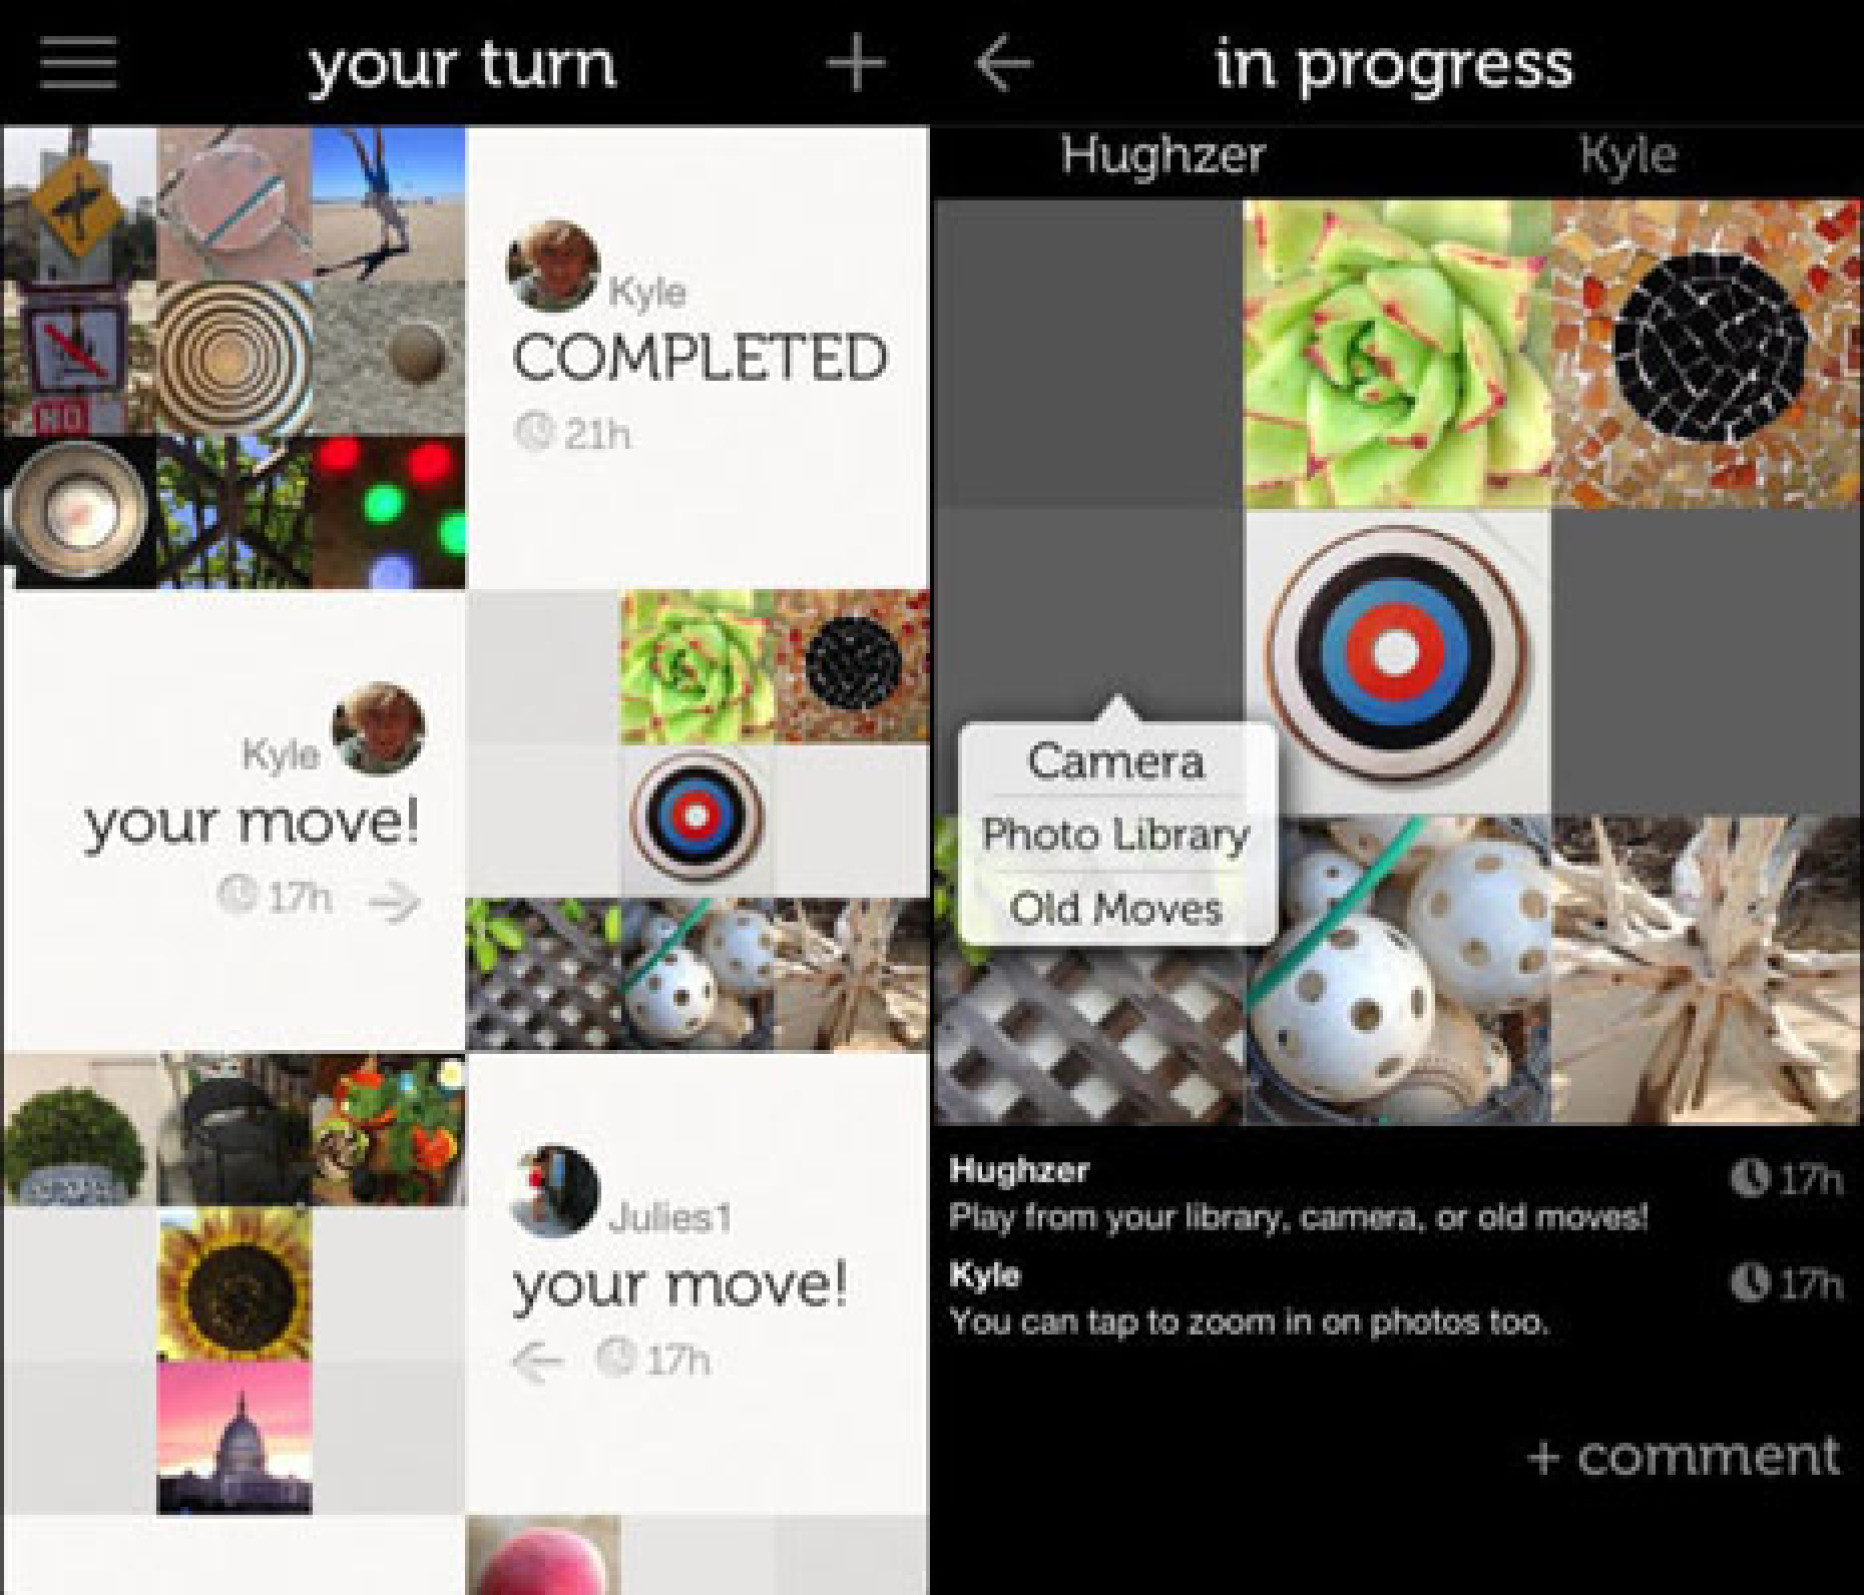 tic tac phOto – A Fun and Entertaining Way to Fill Up Some Time